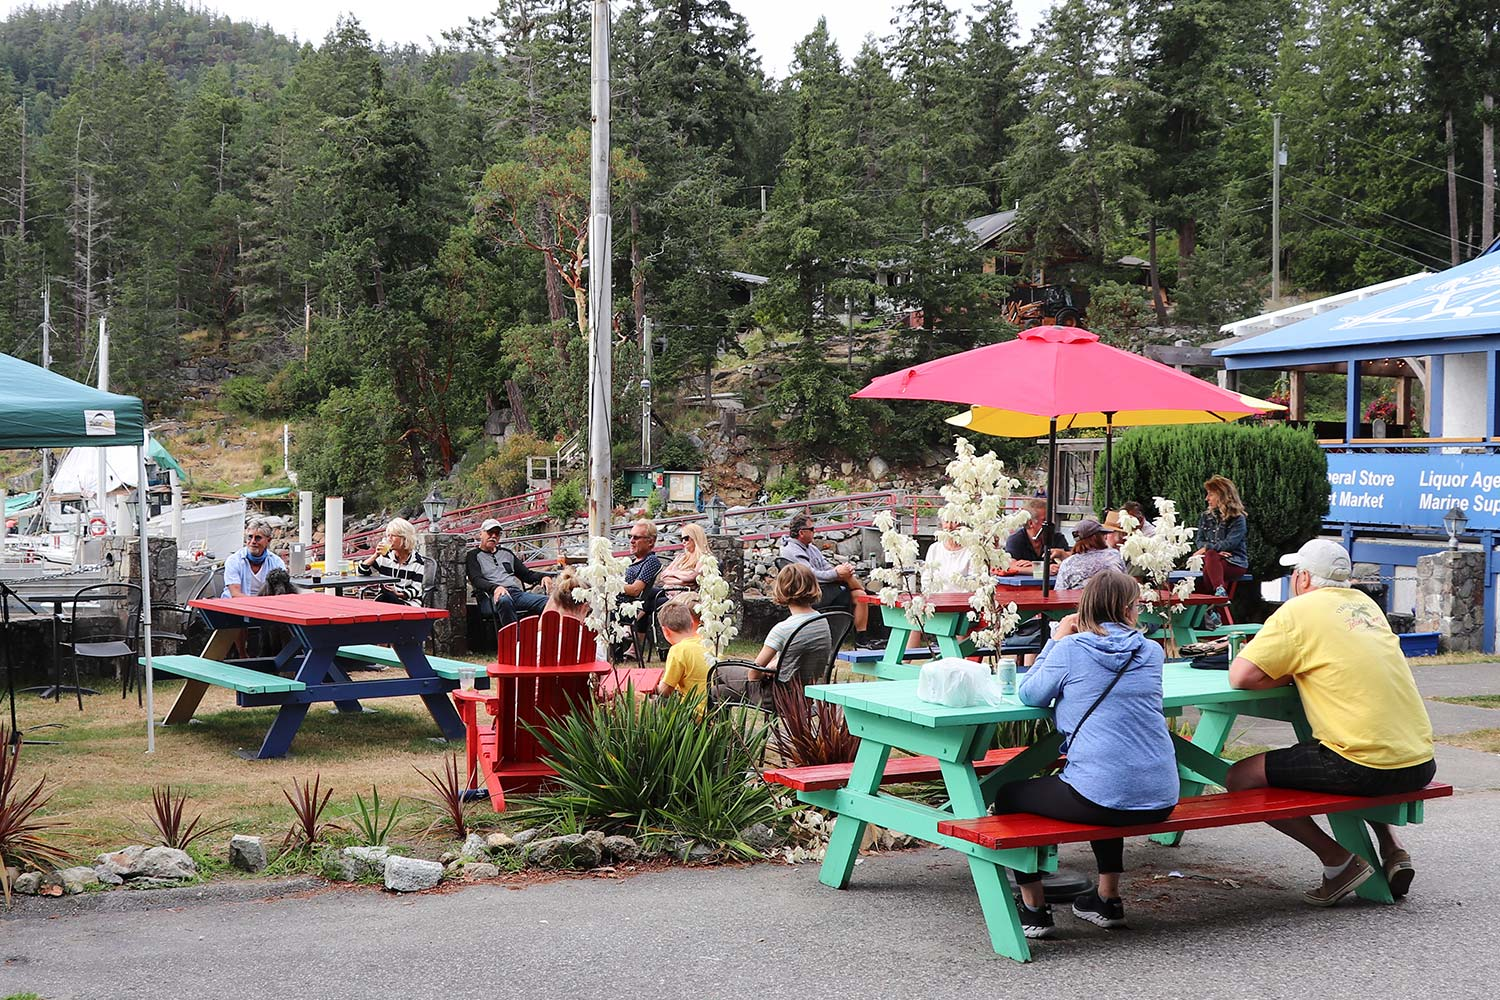 Customers enjoy an outdoor concert on the lawn of John Henry's General Store.